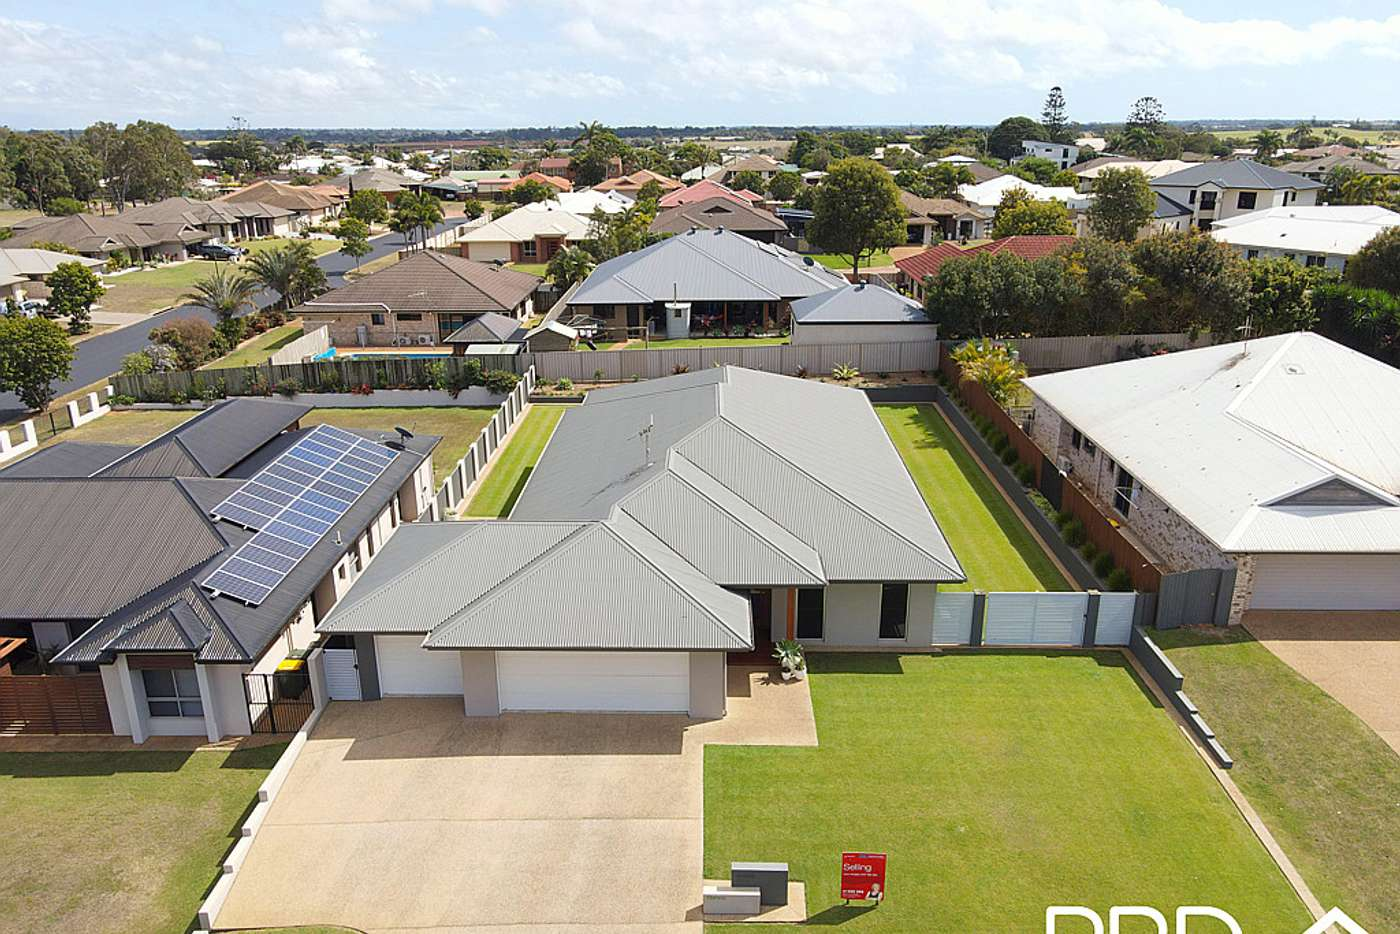 Main view of Homely house listing, 3 Jasmine Court, Kalkie QLD 4670